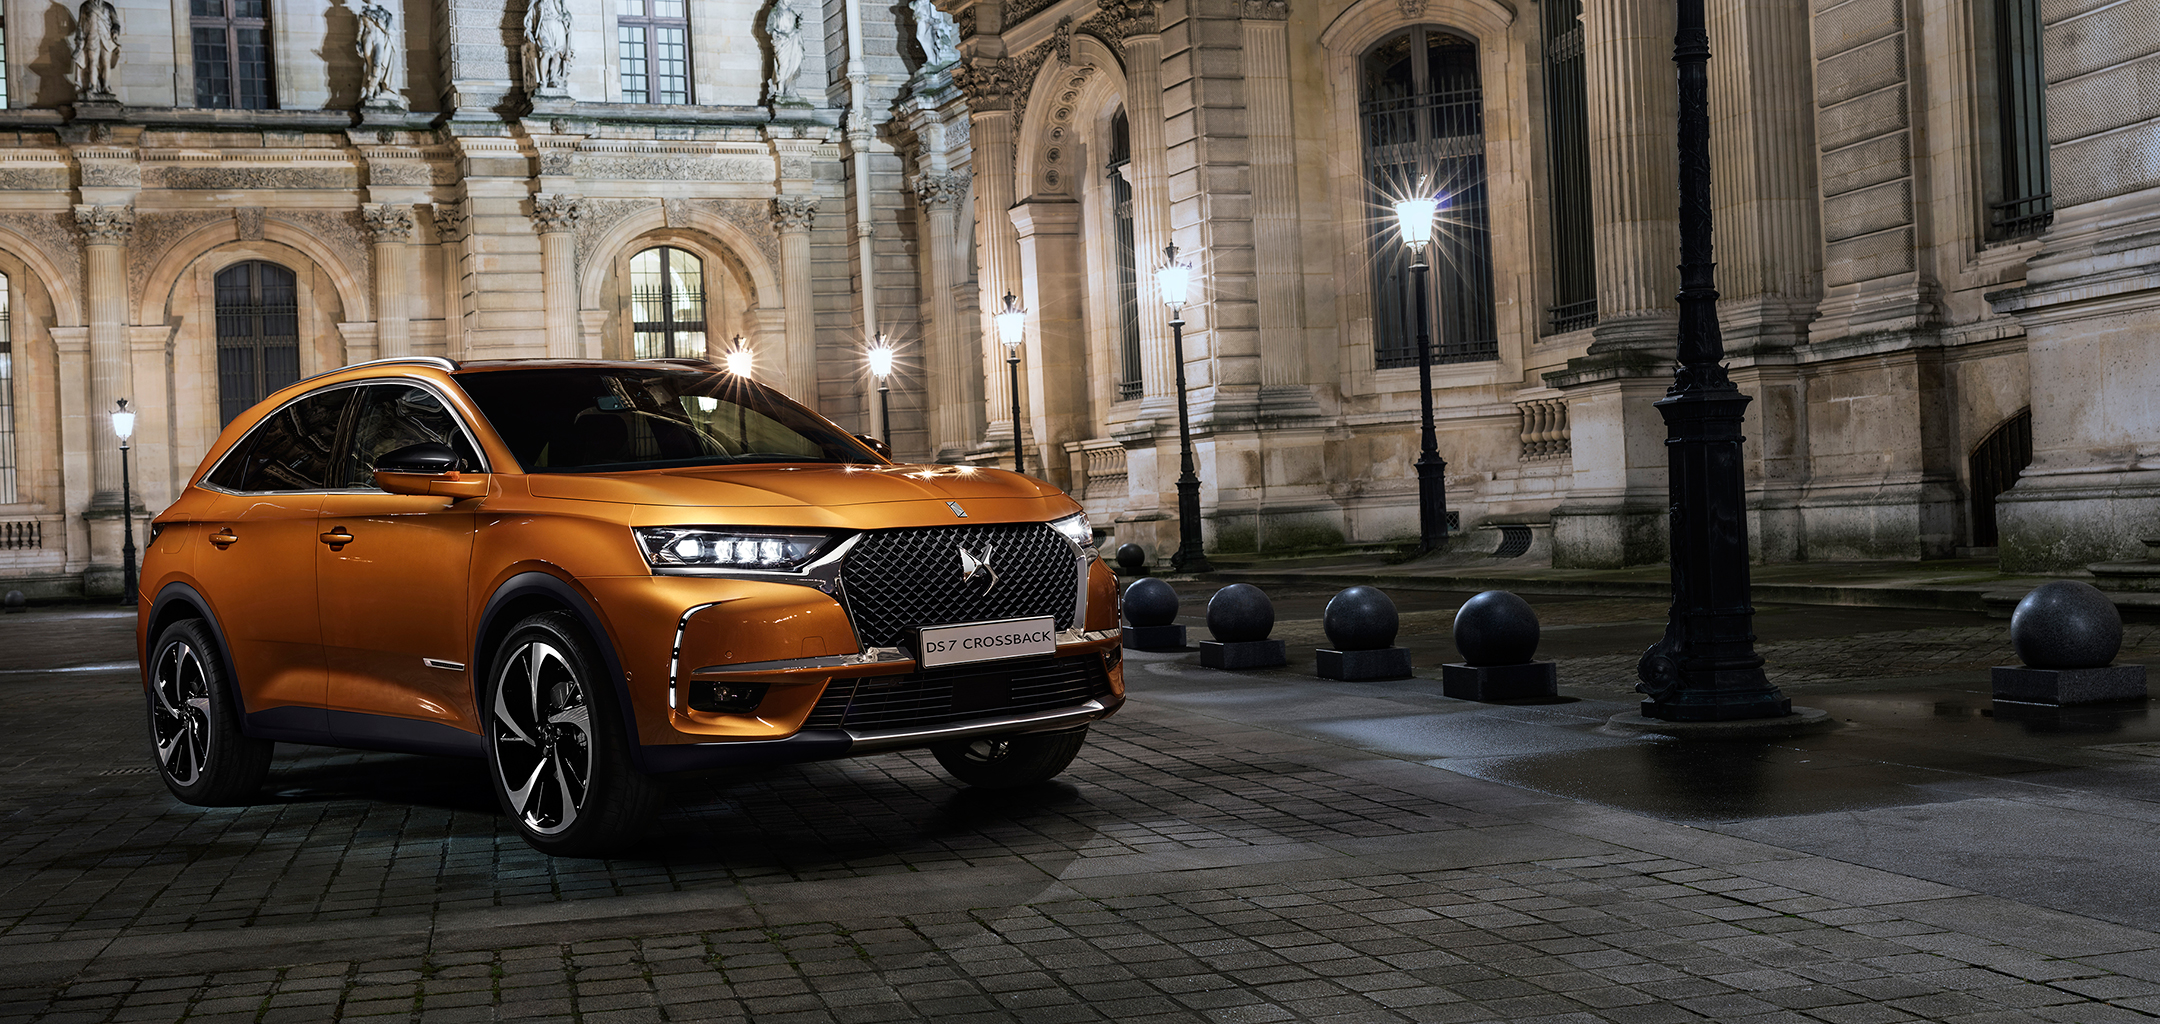 DS 7 CROSSBACK - 2017 - avant / front - photo au Louvre